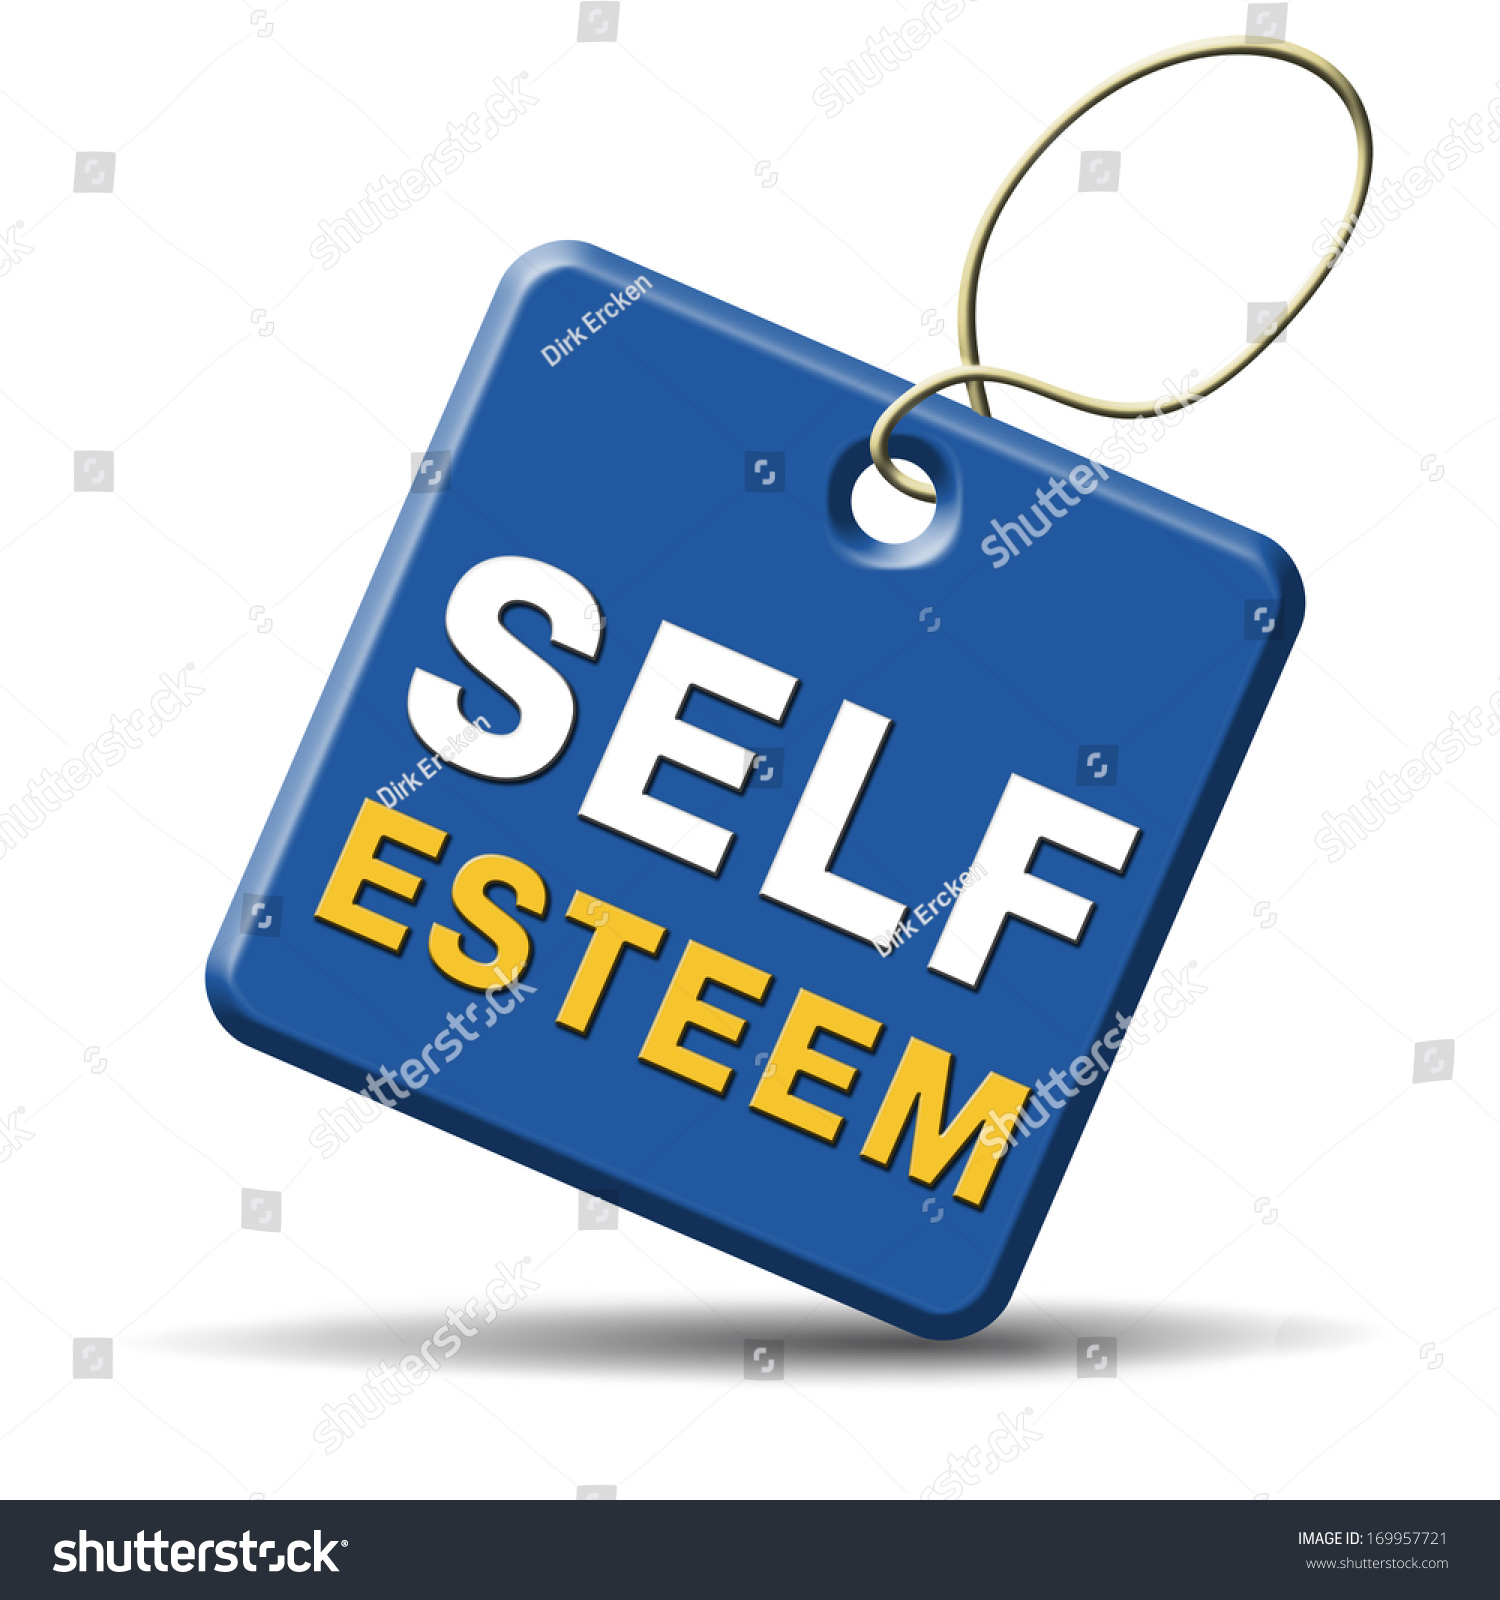 Self Esteem Regard Or Respect Confidence And Pride Psychology Stock Photo 169957721 : Shutterstock